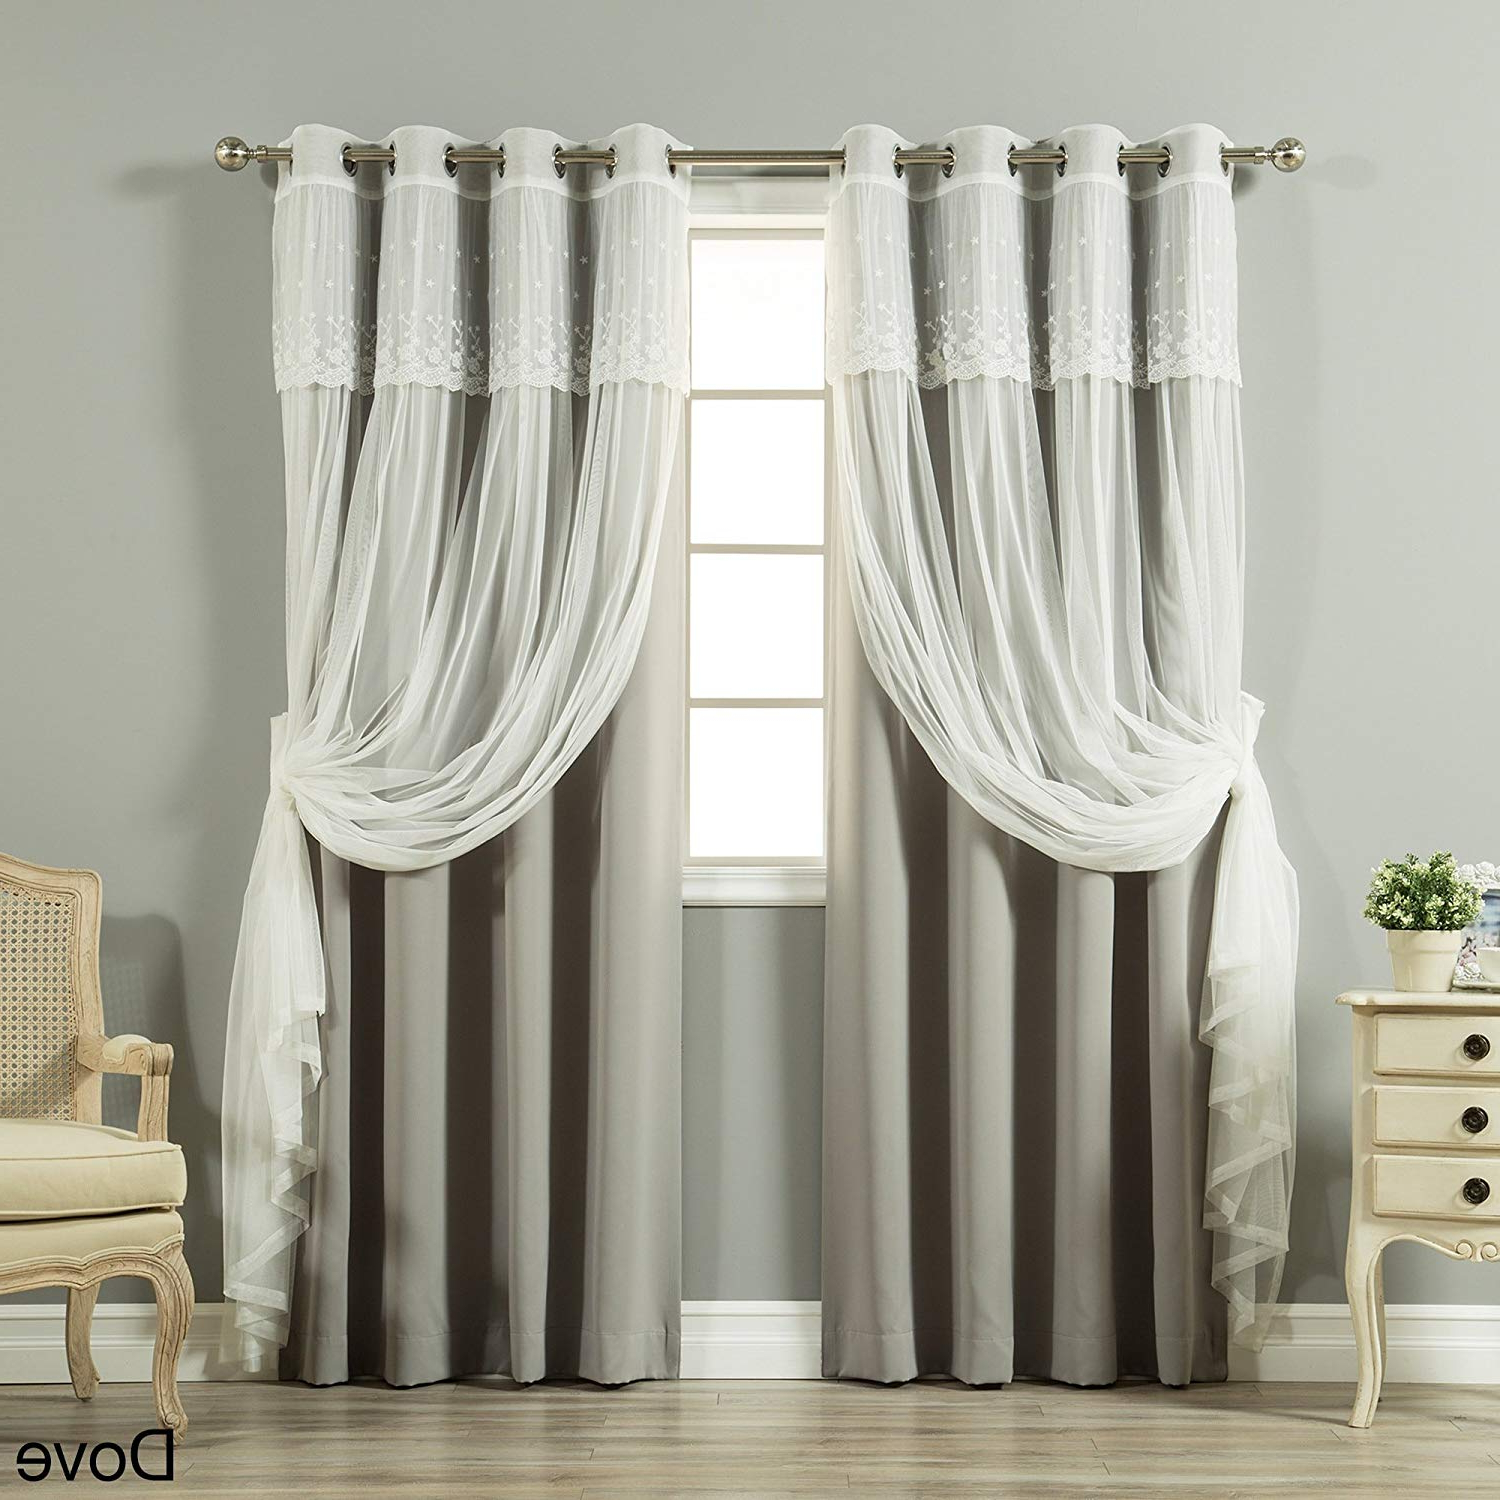 2020 Amazon: Aurora Home Tulle Sheer With Attached Valance With Tulle Sheer With Attached Valance And Blackout 4 Piece Curtain Panel Pairs (View 8 of 20)